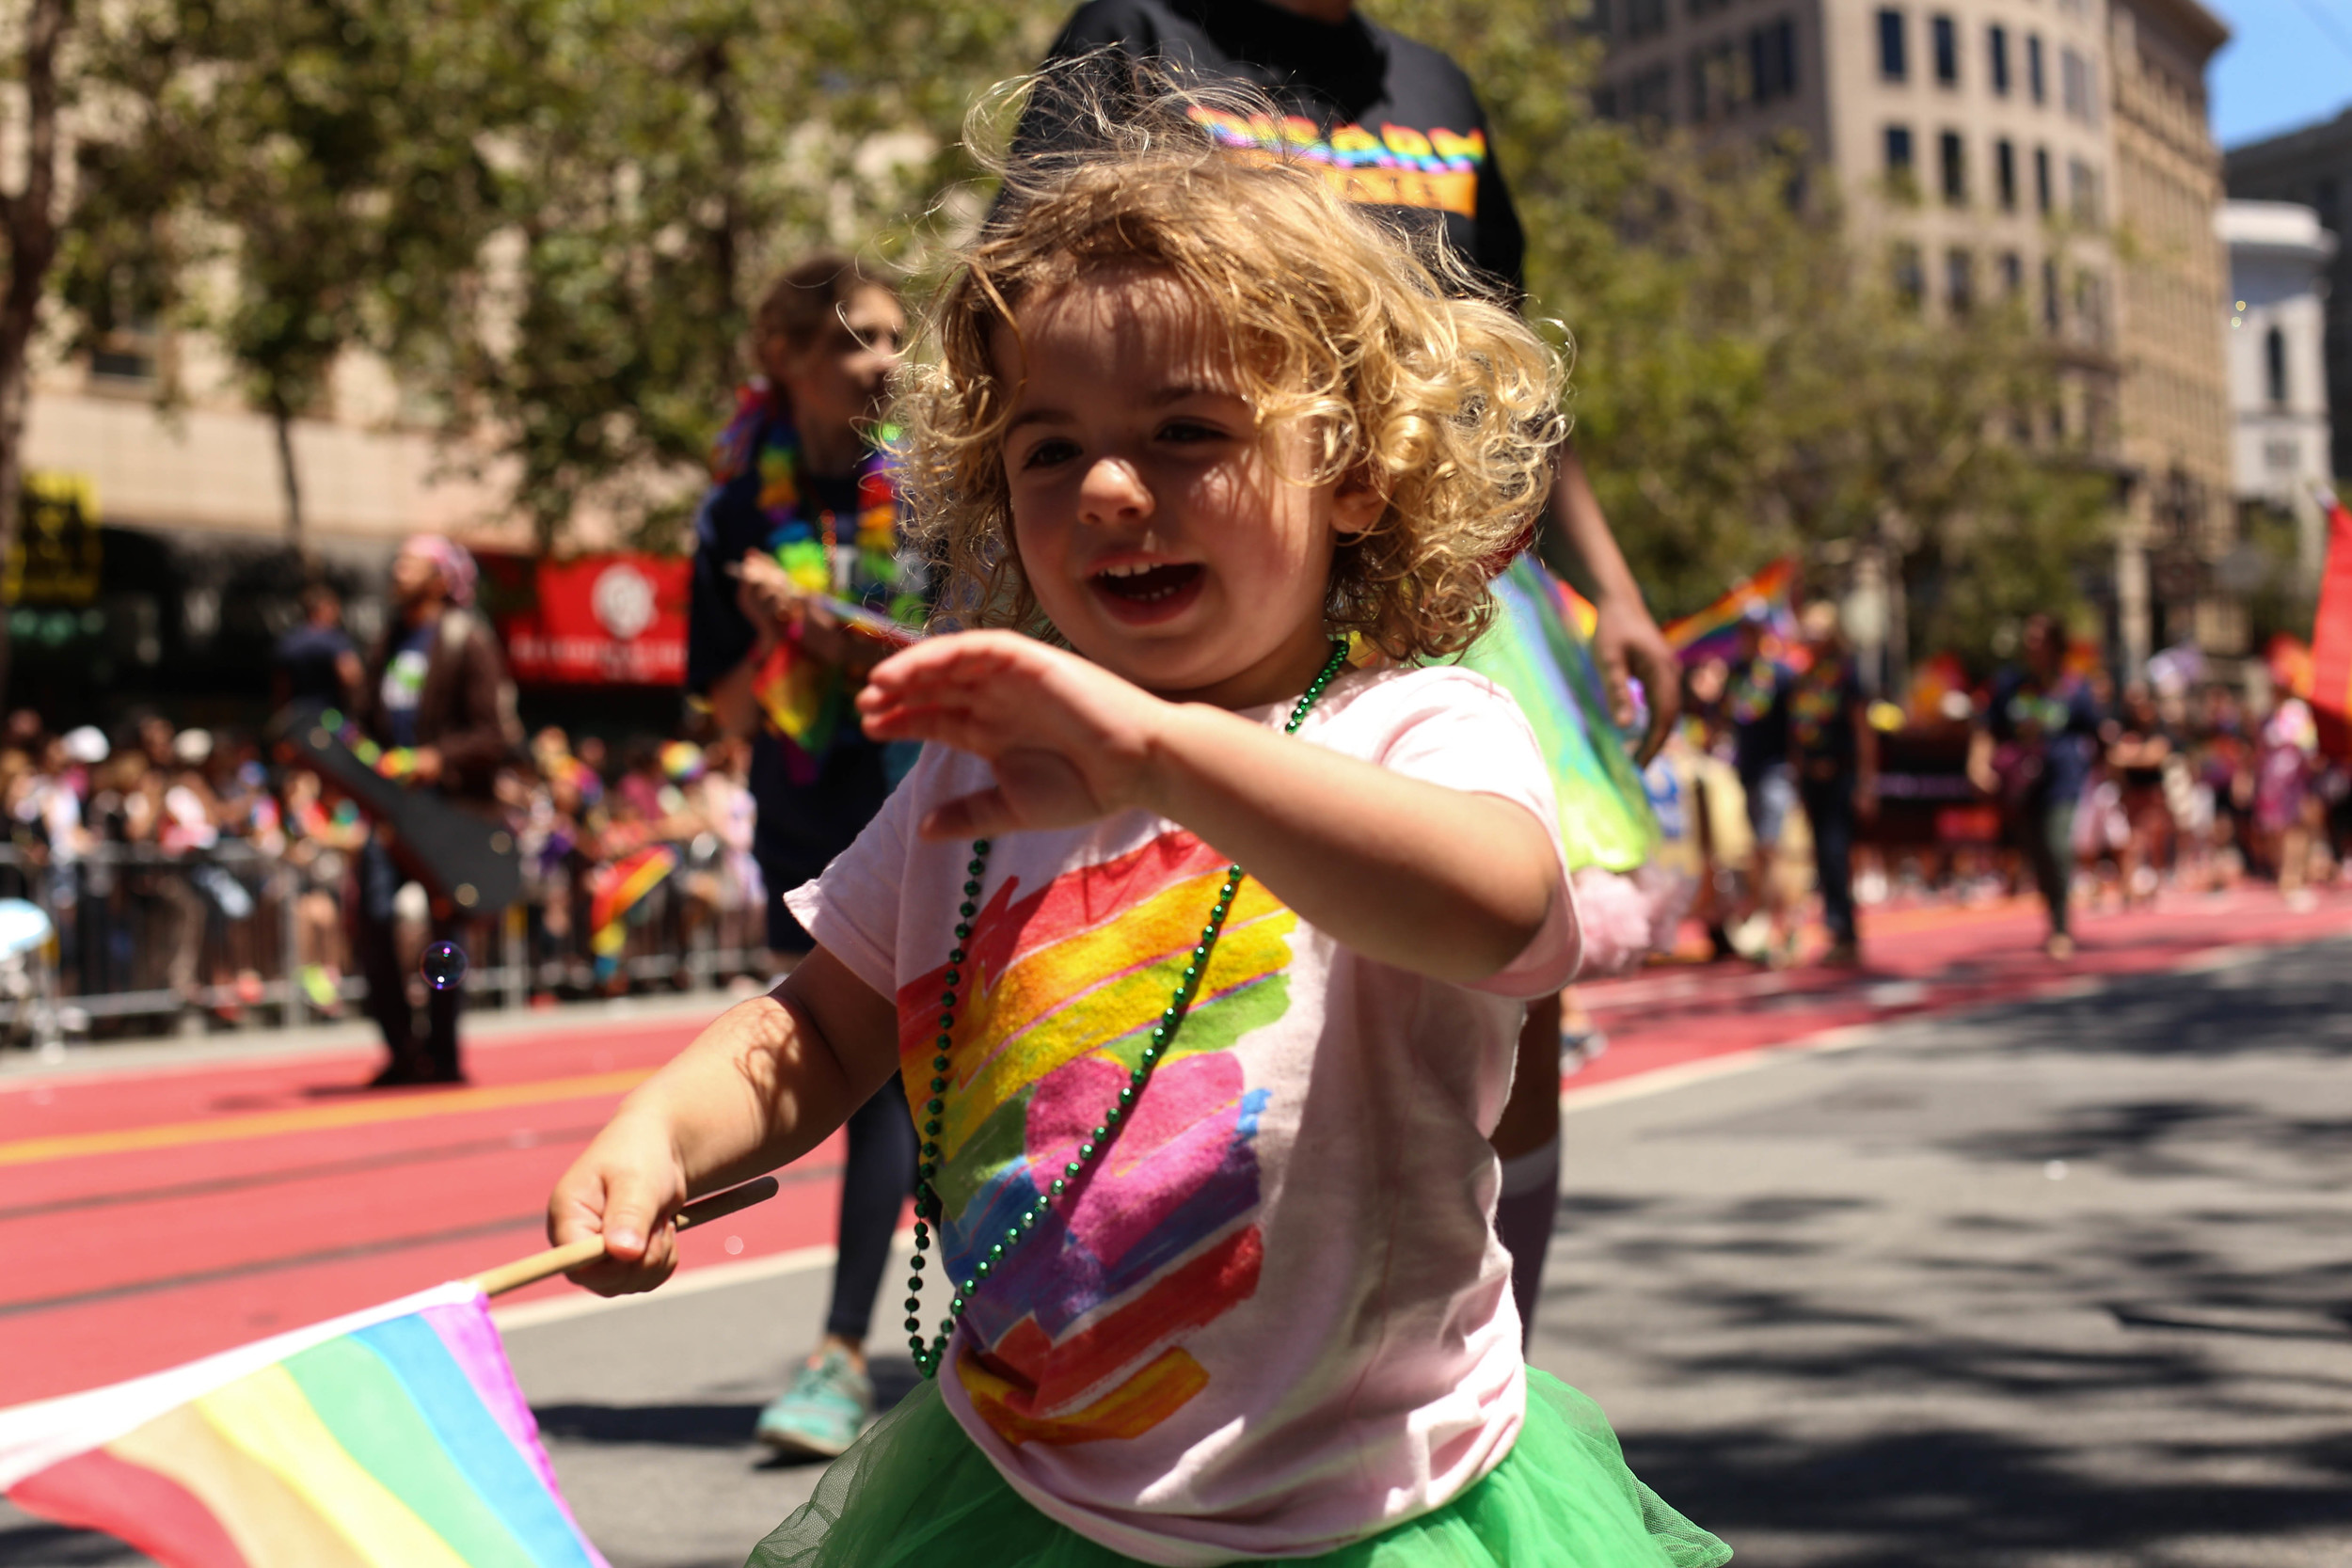 Leo Herring (2 years old, San Francisco, Cali) tries to catch bubbles during the San Francisco Pride Parade on Sunday, June 26, 2016.